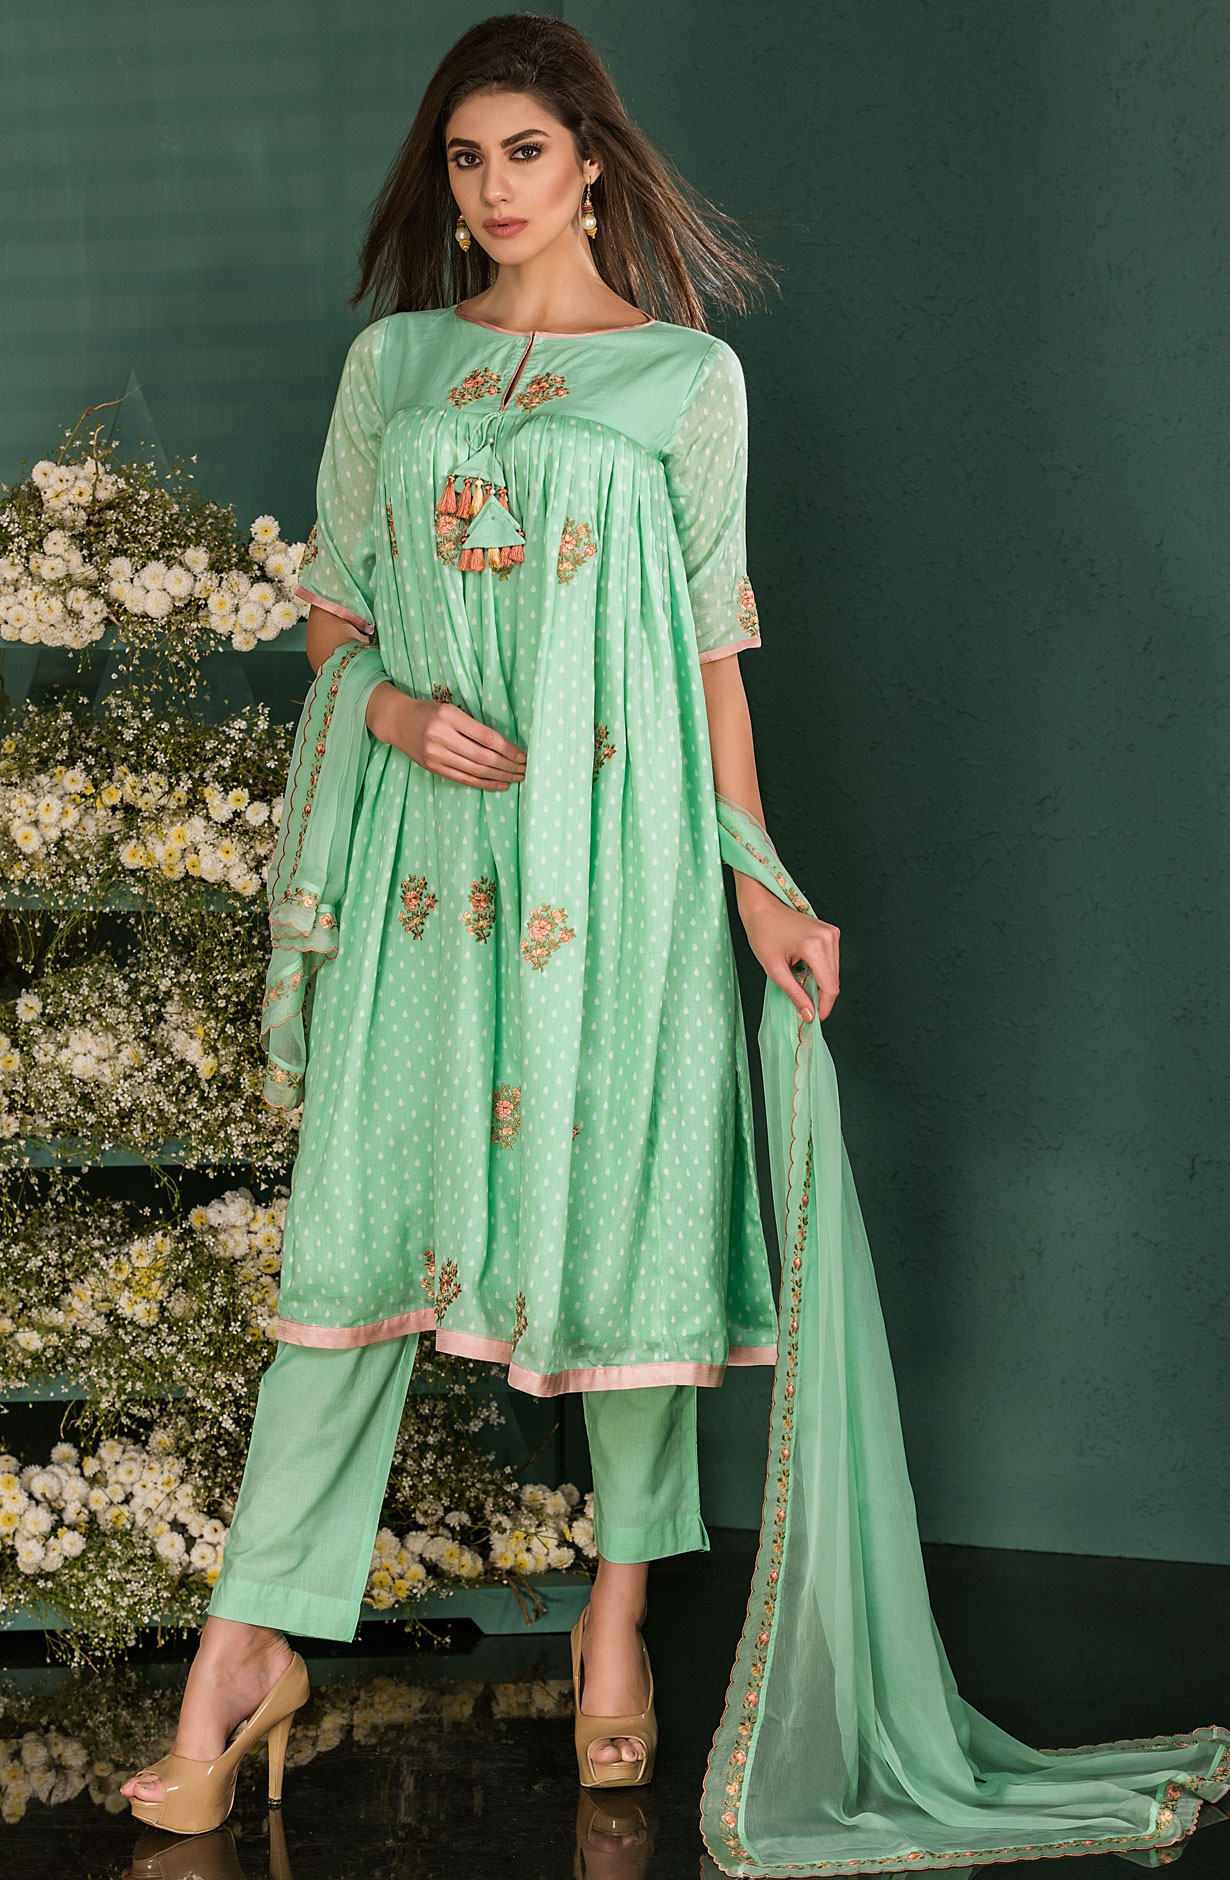 45c99416438 Green Cotton Digital Print Salwar Kameez with Beautiful Floral Embroidery